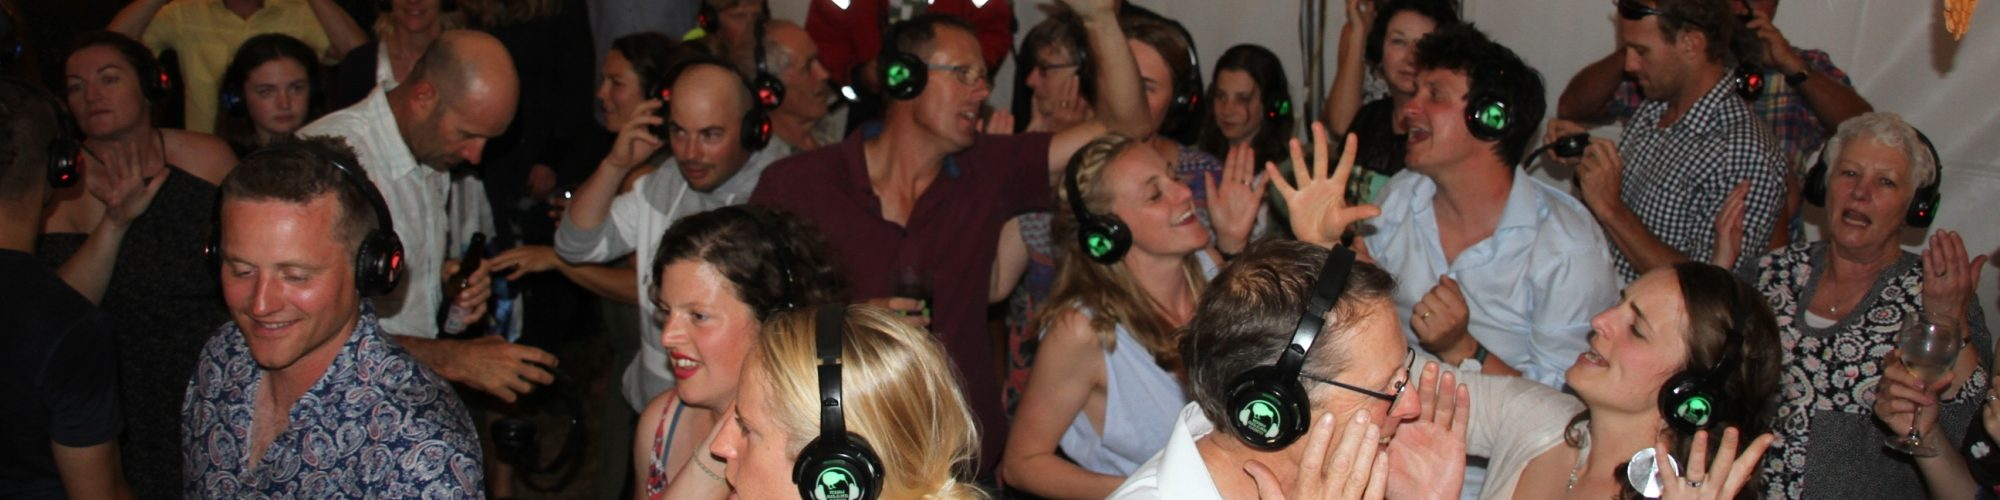 A Silent Disco is a great addition to any party and is enjoyed by all ages!